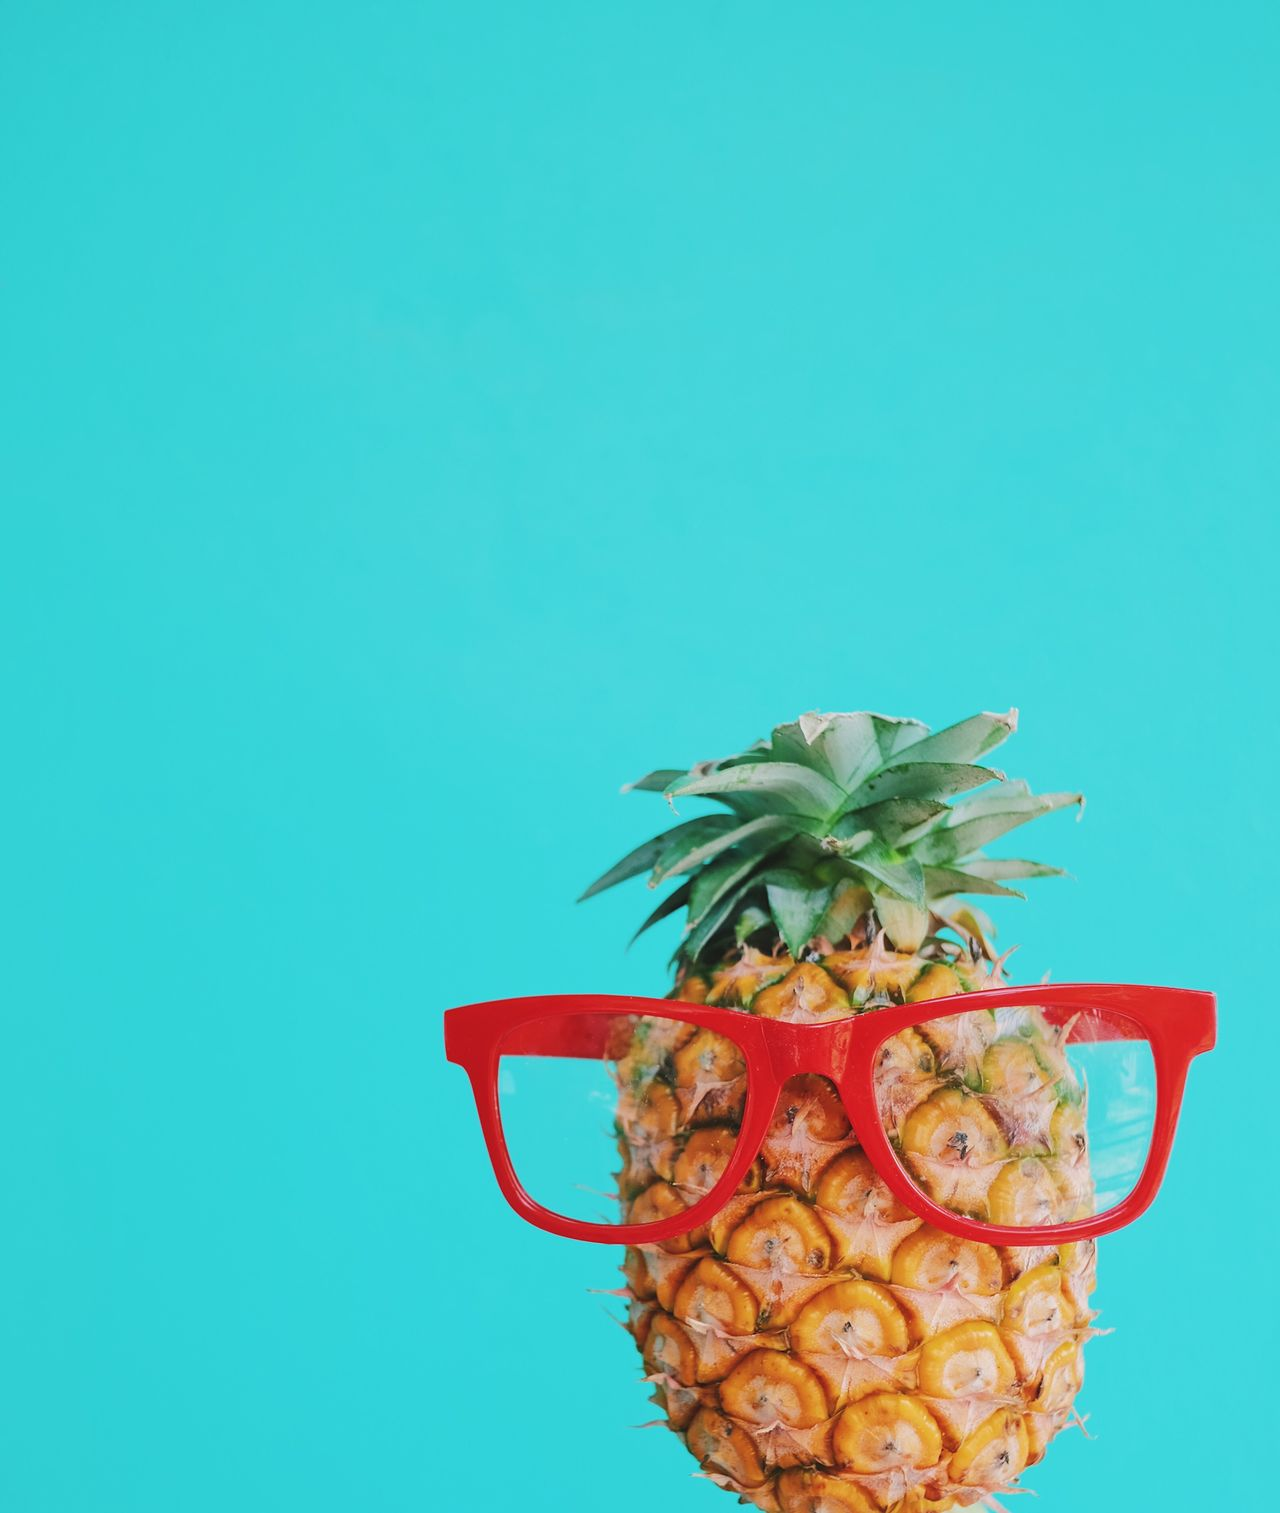 Copy Space No People Studio Shot Food And Drink Healthy Eating Red Food Freshness Blue Fruit Eyeglasses  Colorful Pineapple Fashion Summer Summertime Vacation Tropical Copy Space Colors and patterns Close-up Day